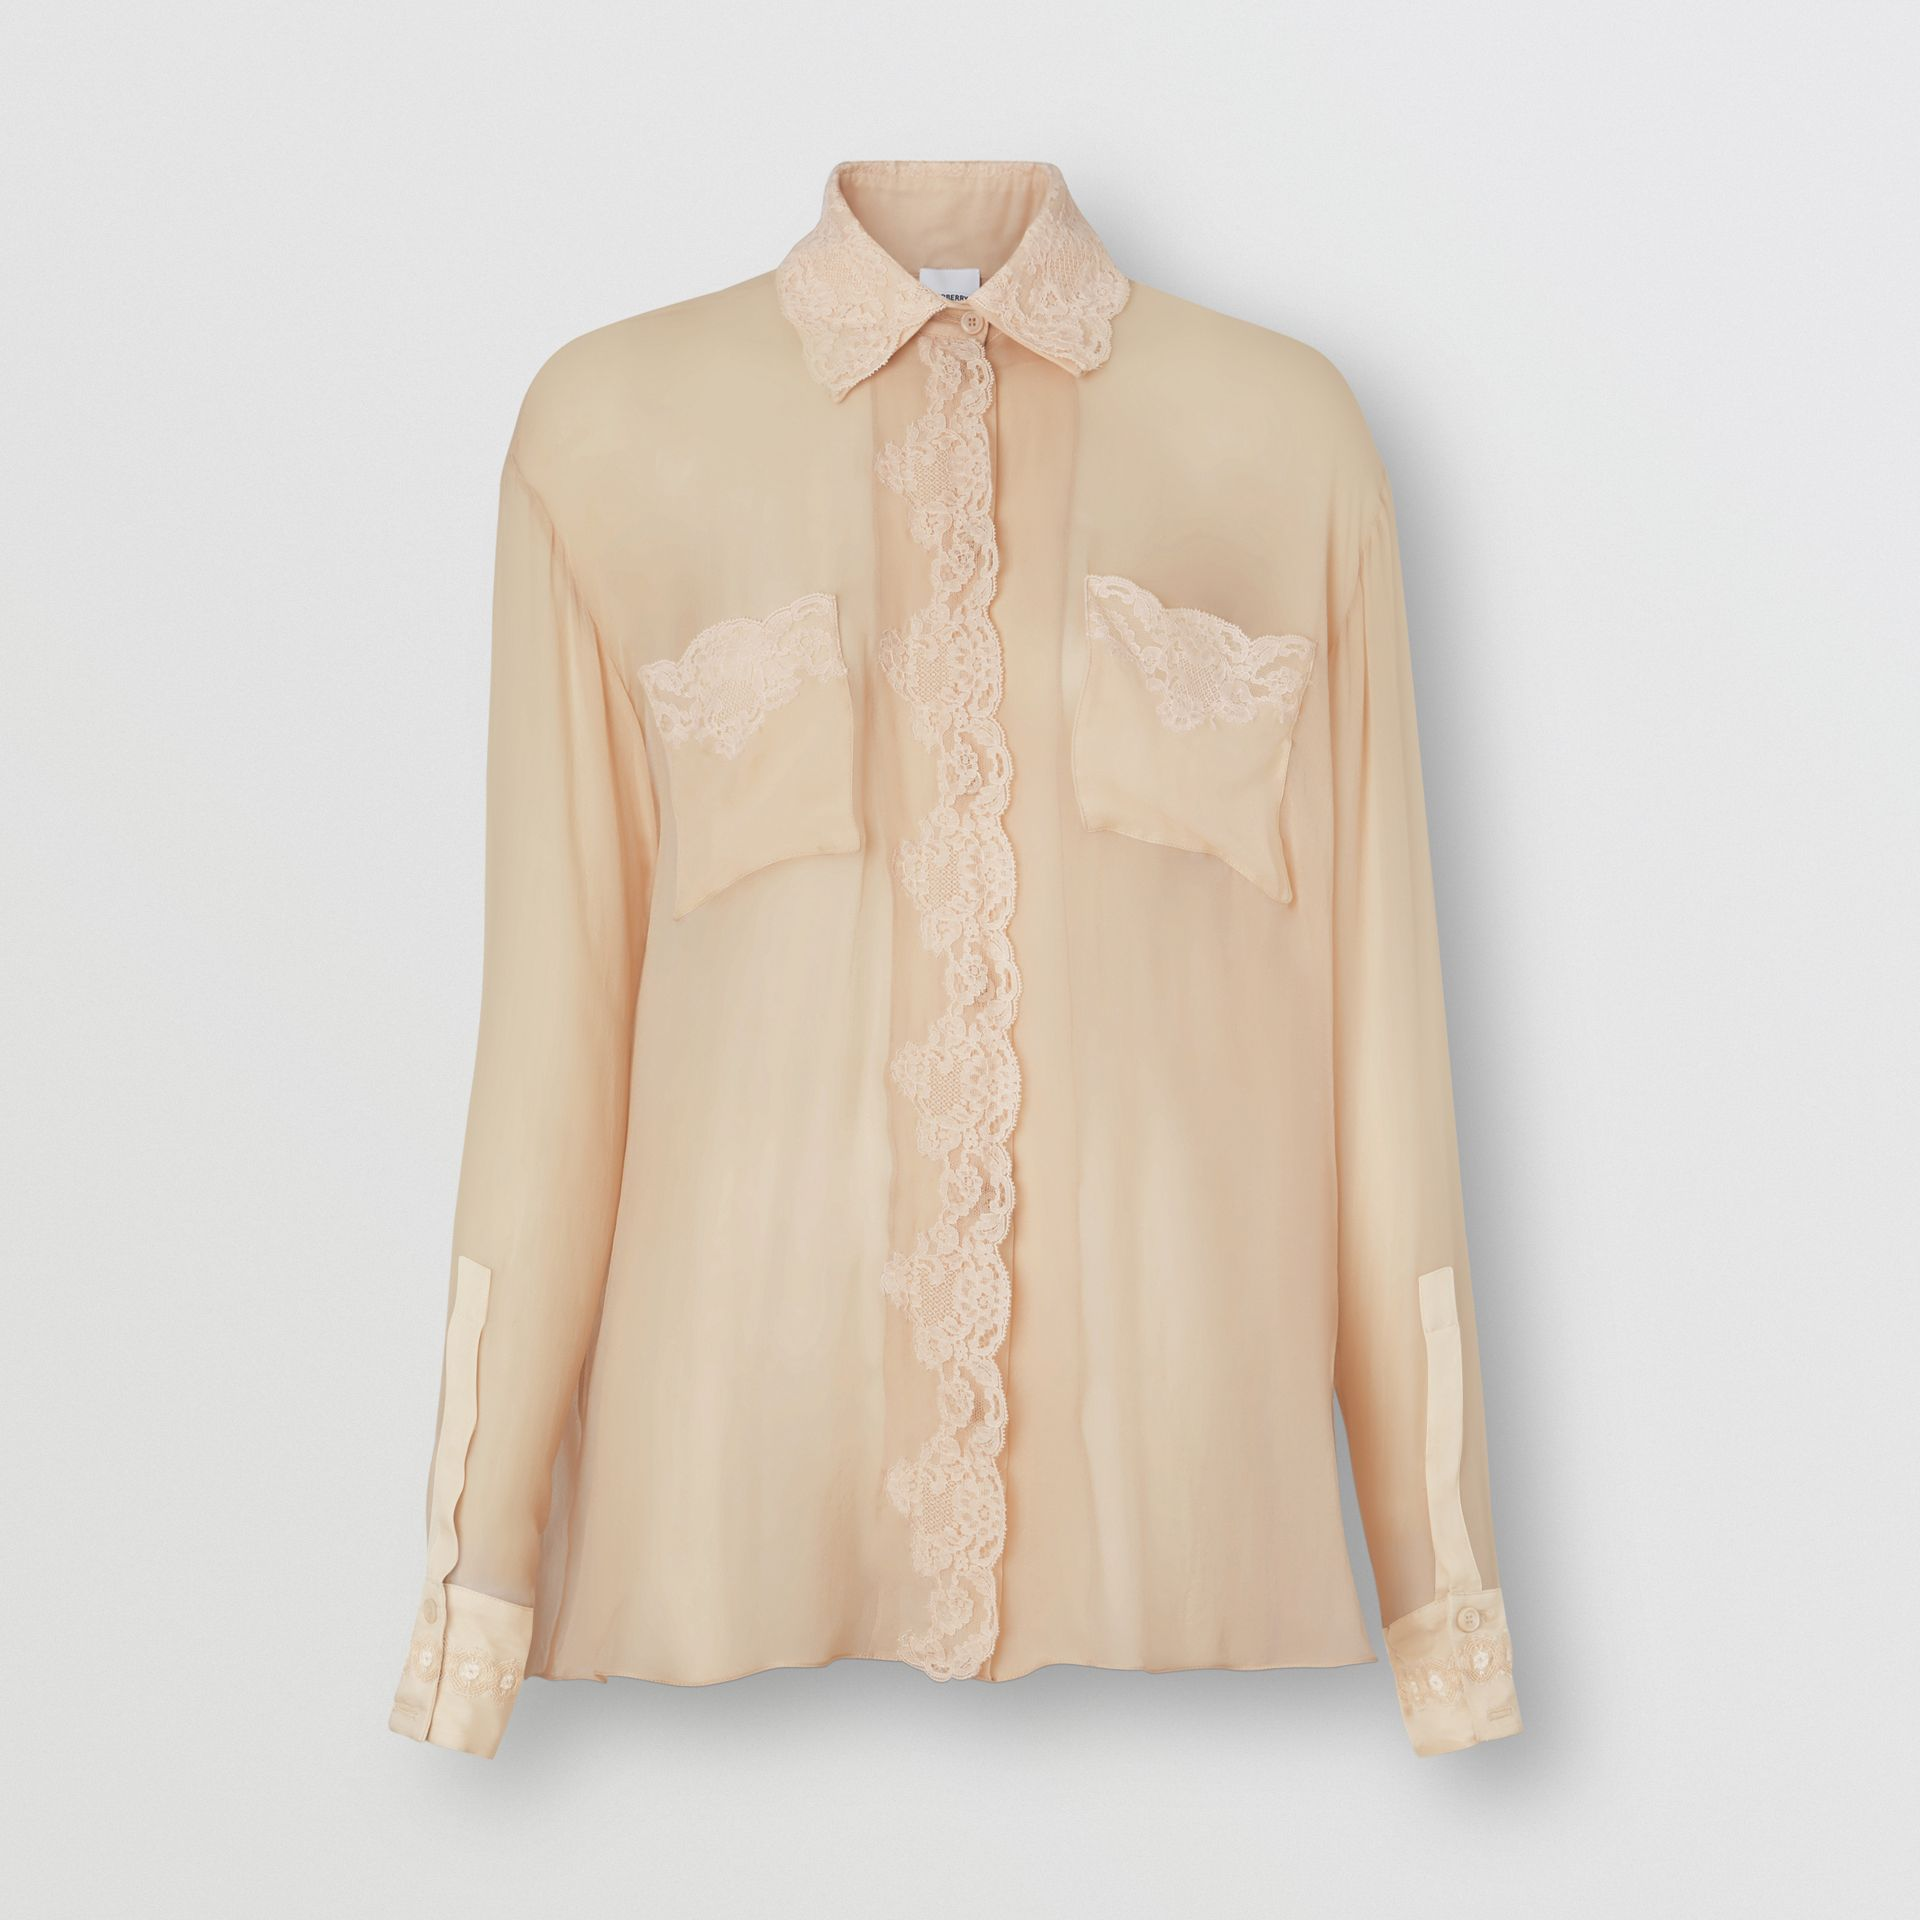 Lace Detail Silk Chiffon Shirt in Soft Peach - Women | Burberry United States - gallery image 3